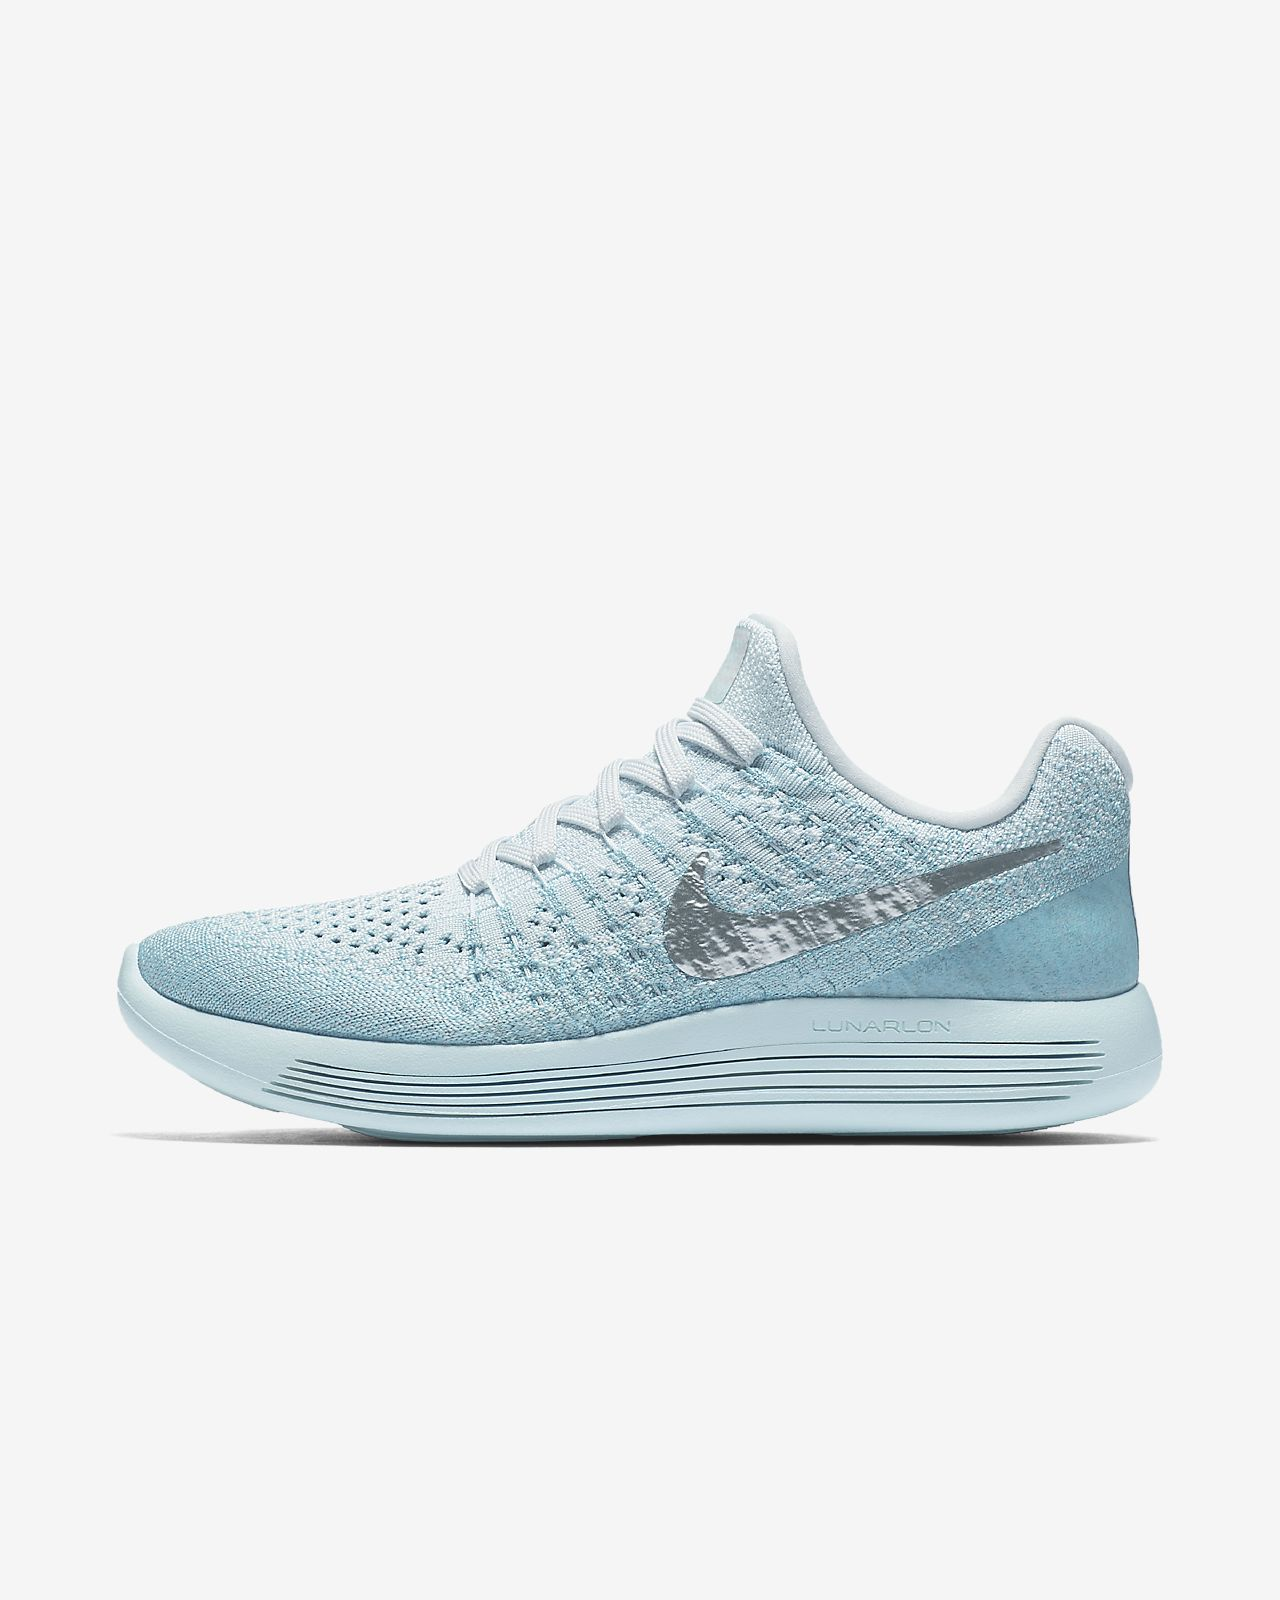 Nike Lunarepic Low Flyknit 2 9